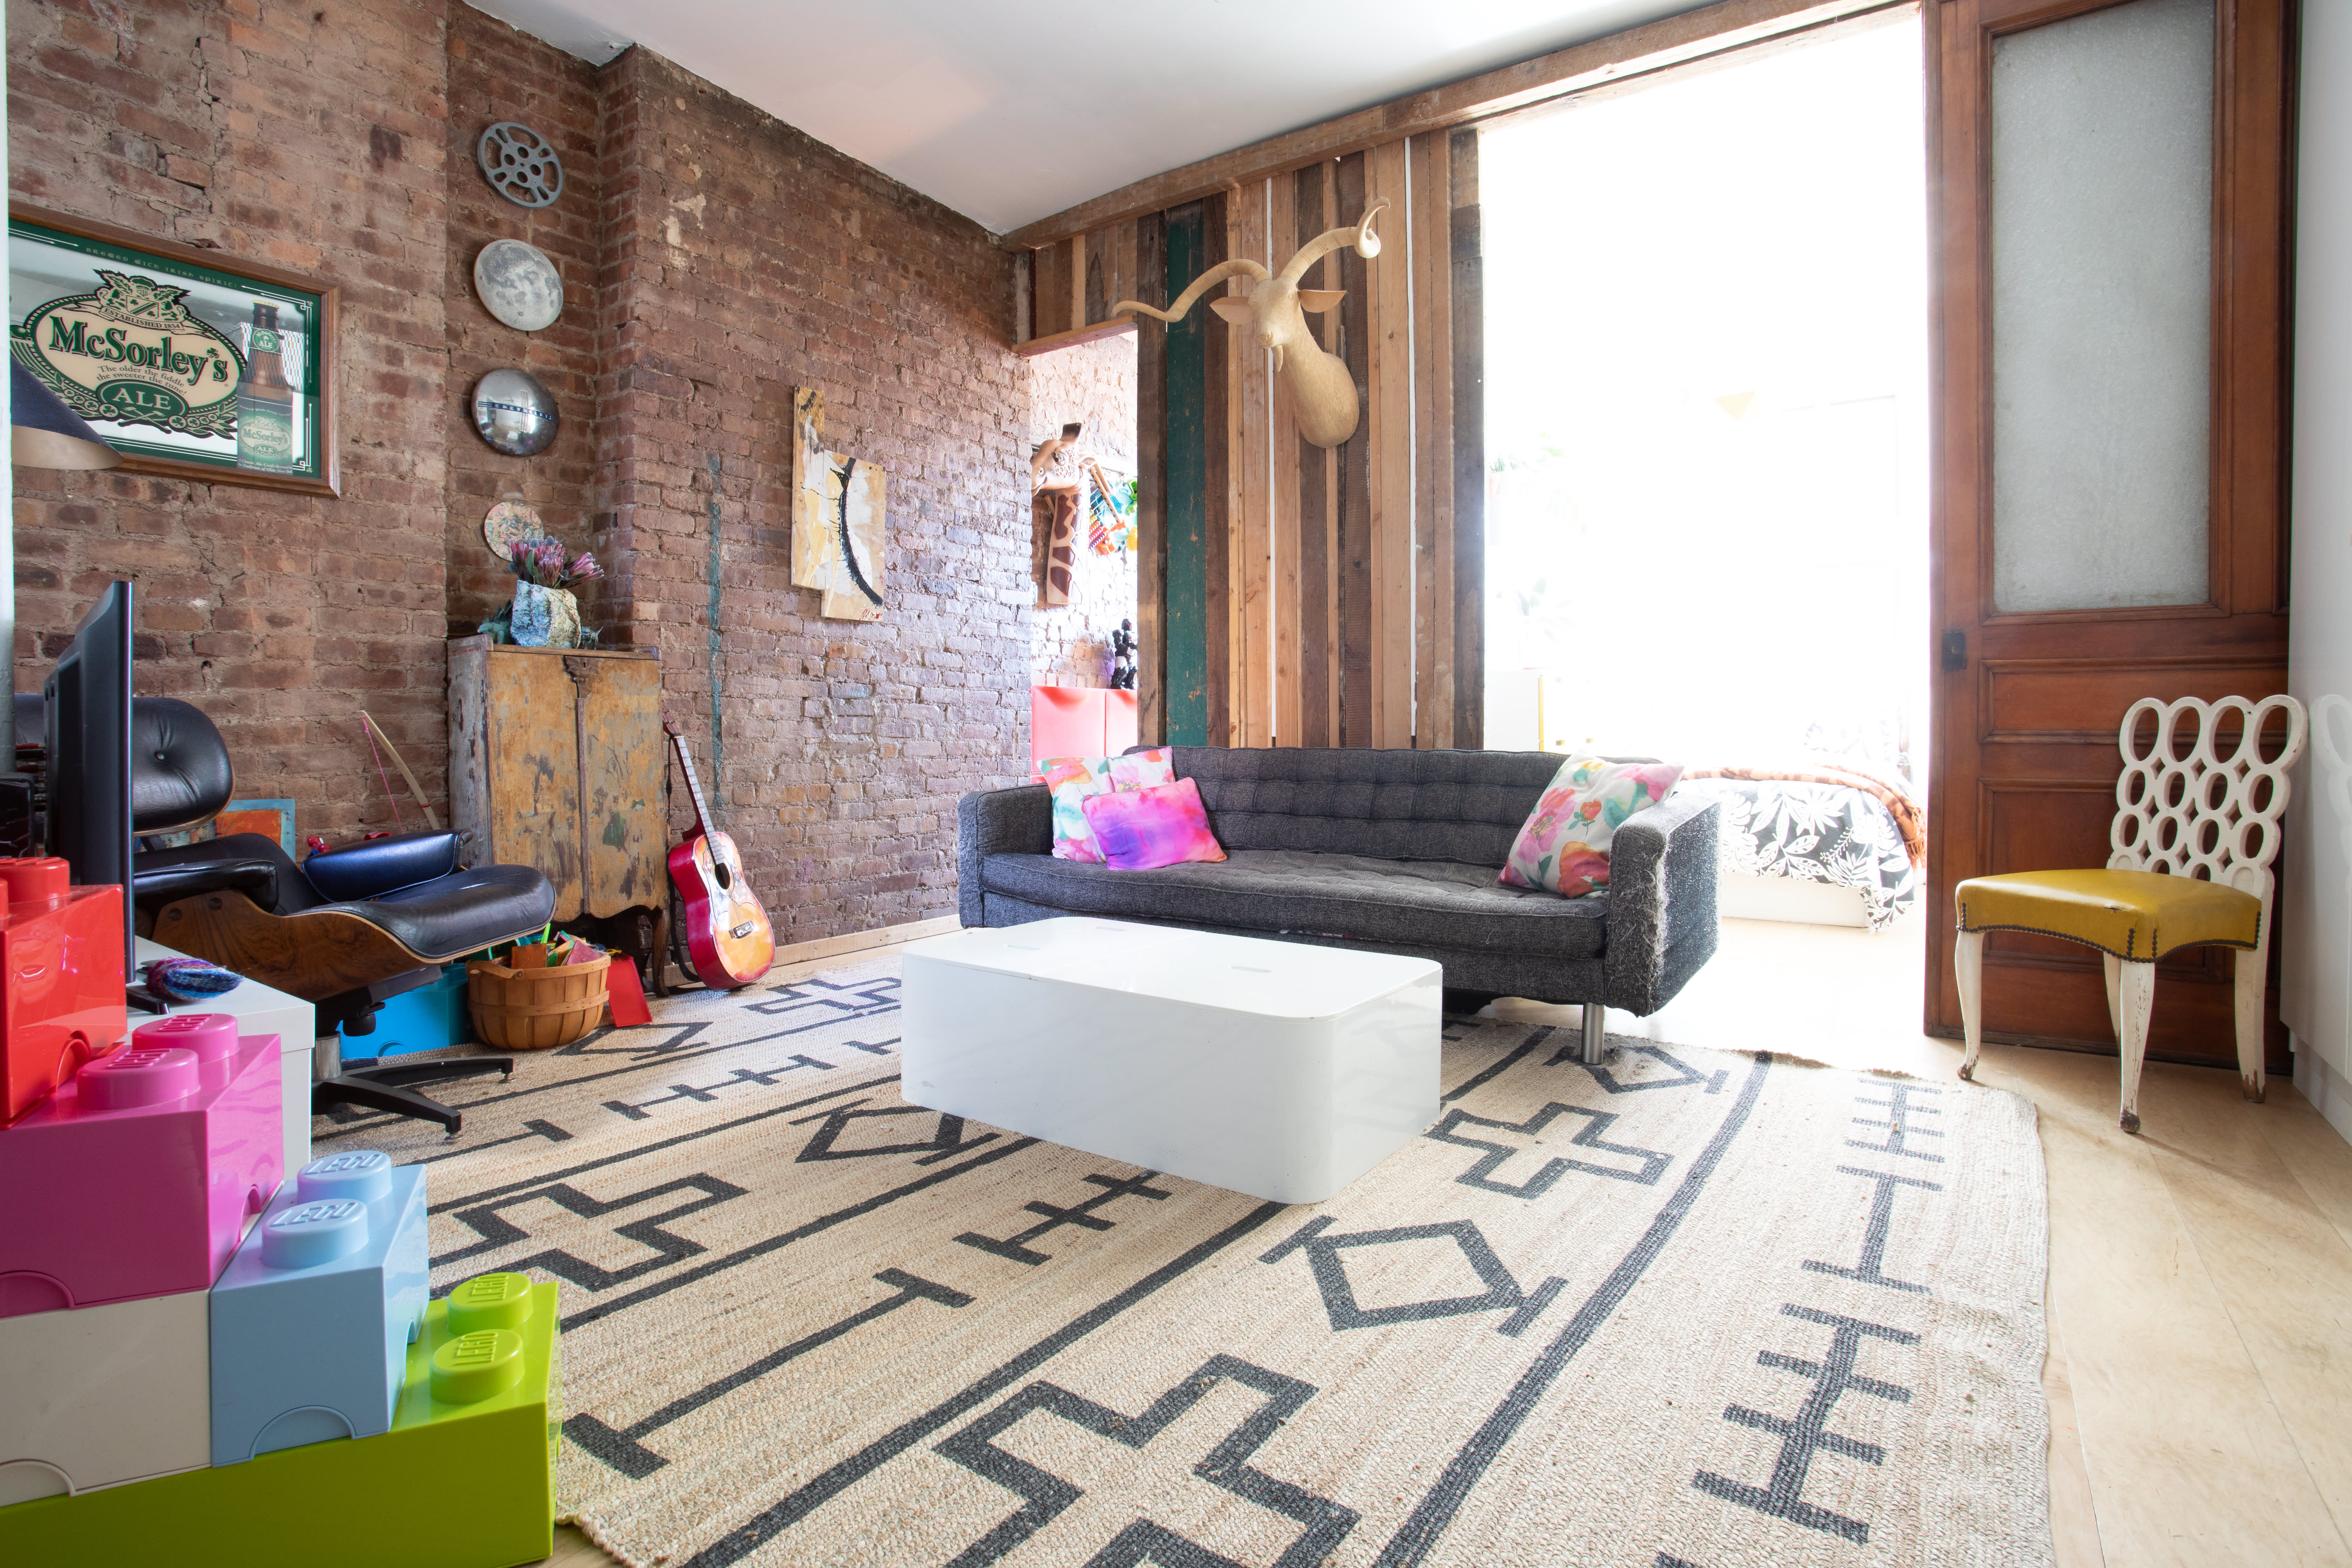 This Family Of Four S 500 Square Foot Apartment Feels Much Larger Apartment Therapy